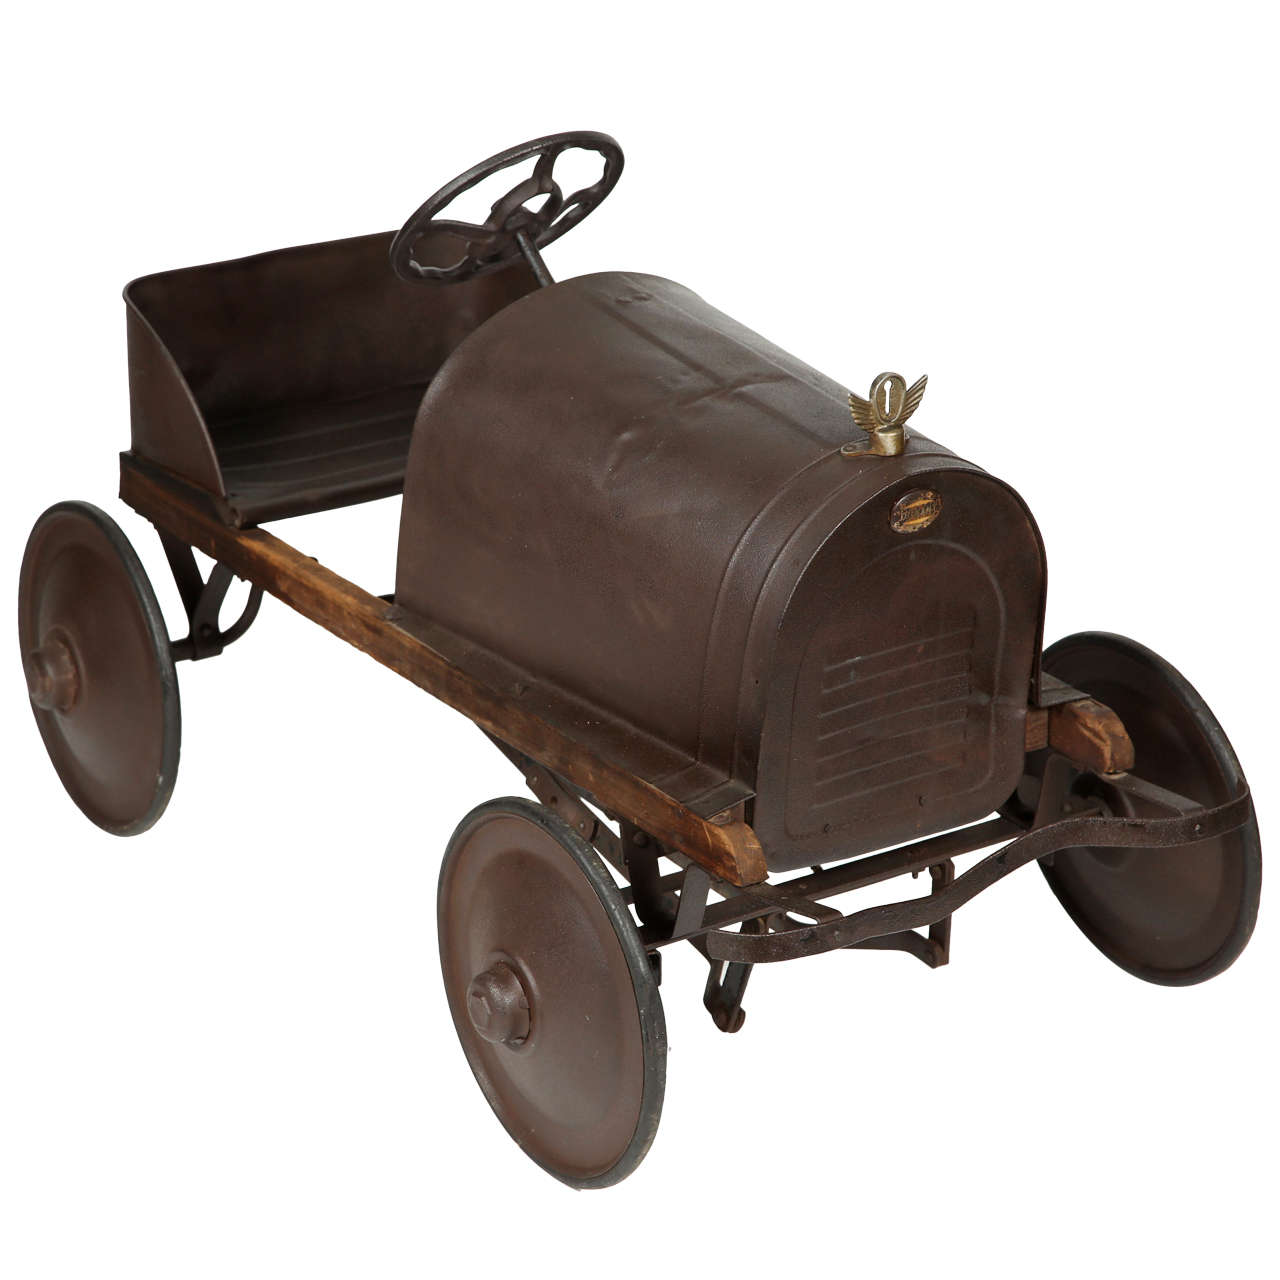 Antique Toy Pedal Car From 1915 At 1stdibs